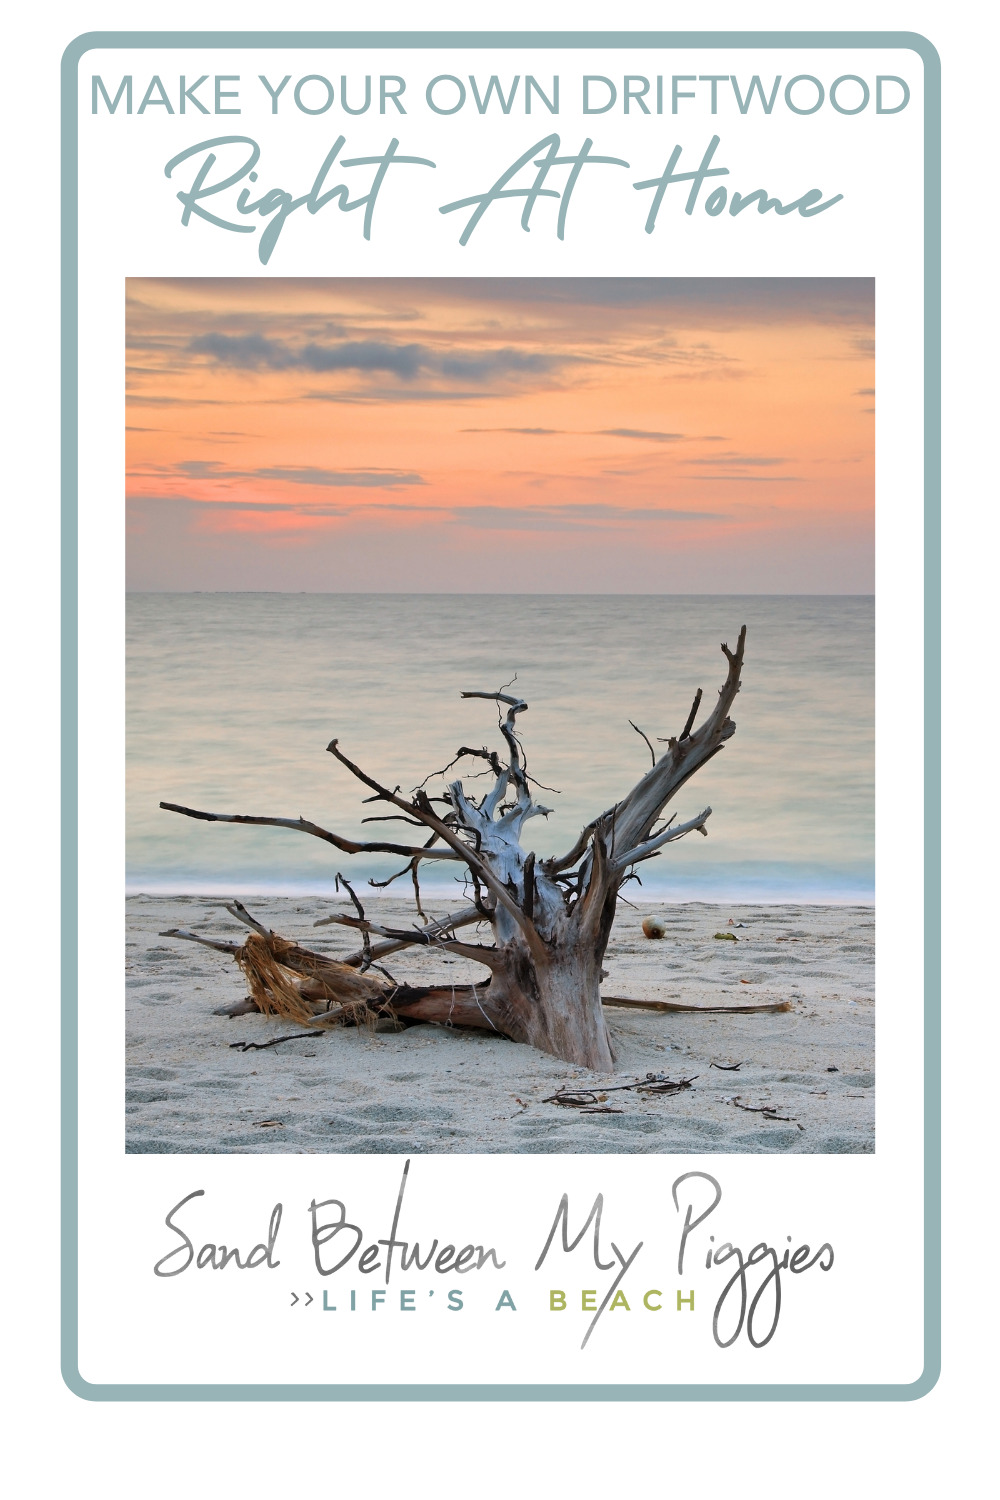 Sandbetweenmypiggies.com is all about the good life. Take a deep breath with travel and beach inspired ideas. Turn your home into an oasis. Try out this idea for DIY driftwood!